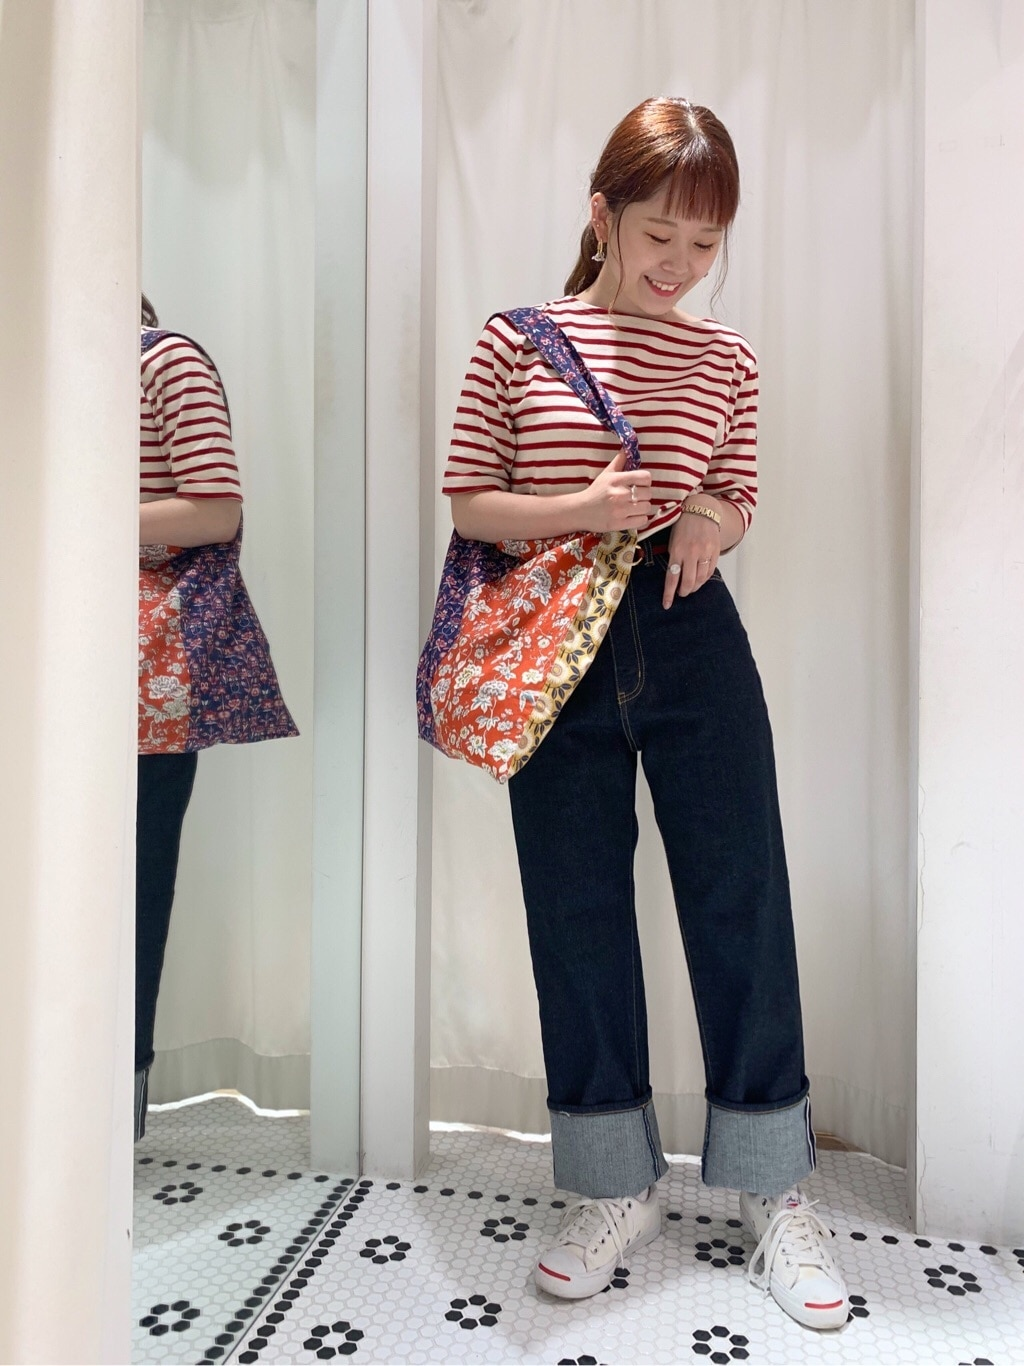 Dot and Stripes CHILD WOMAN 新宿ミロード 身長:157cm 2020.08.18